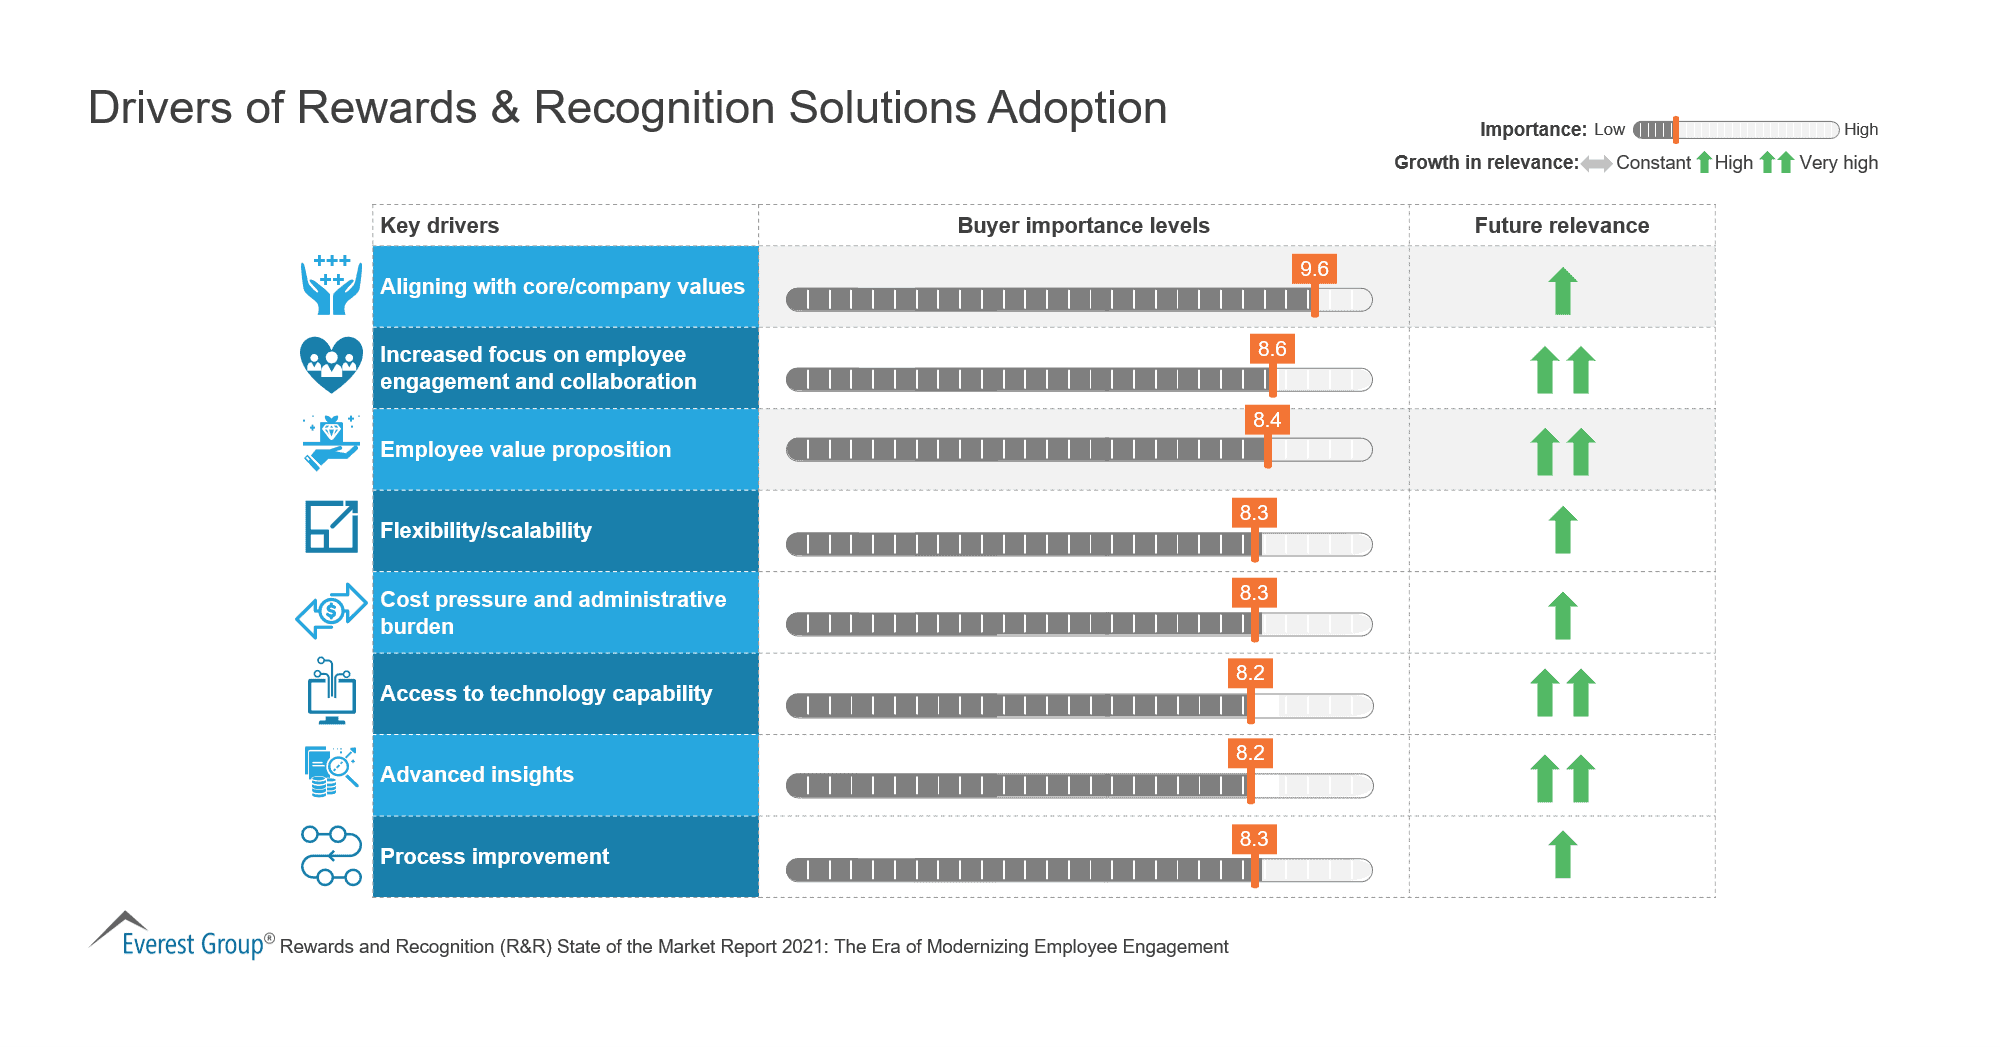 Drivers of Rewards & Recognition Solutions Adoption